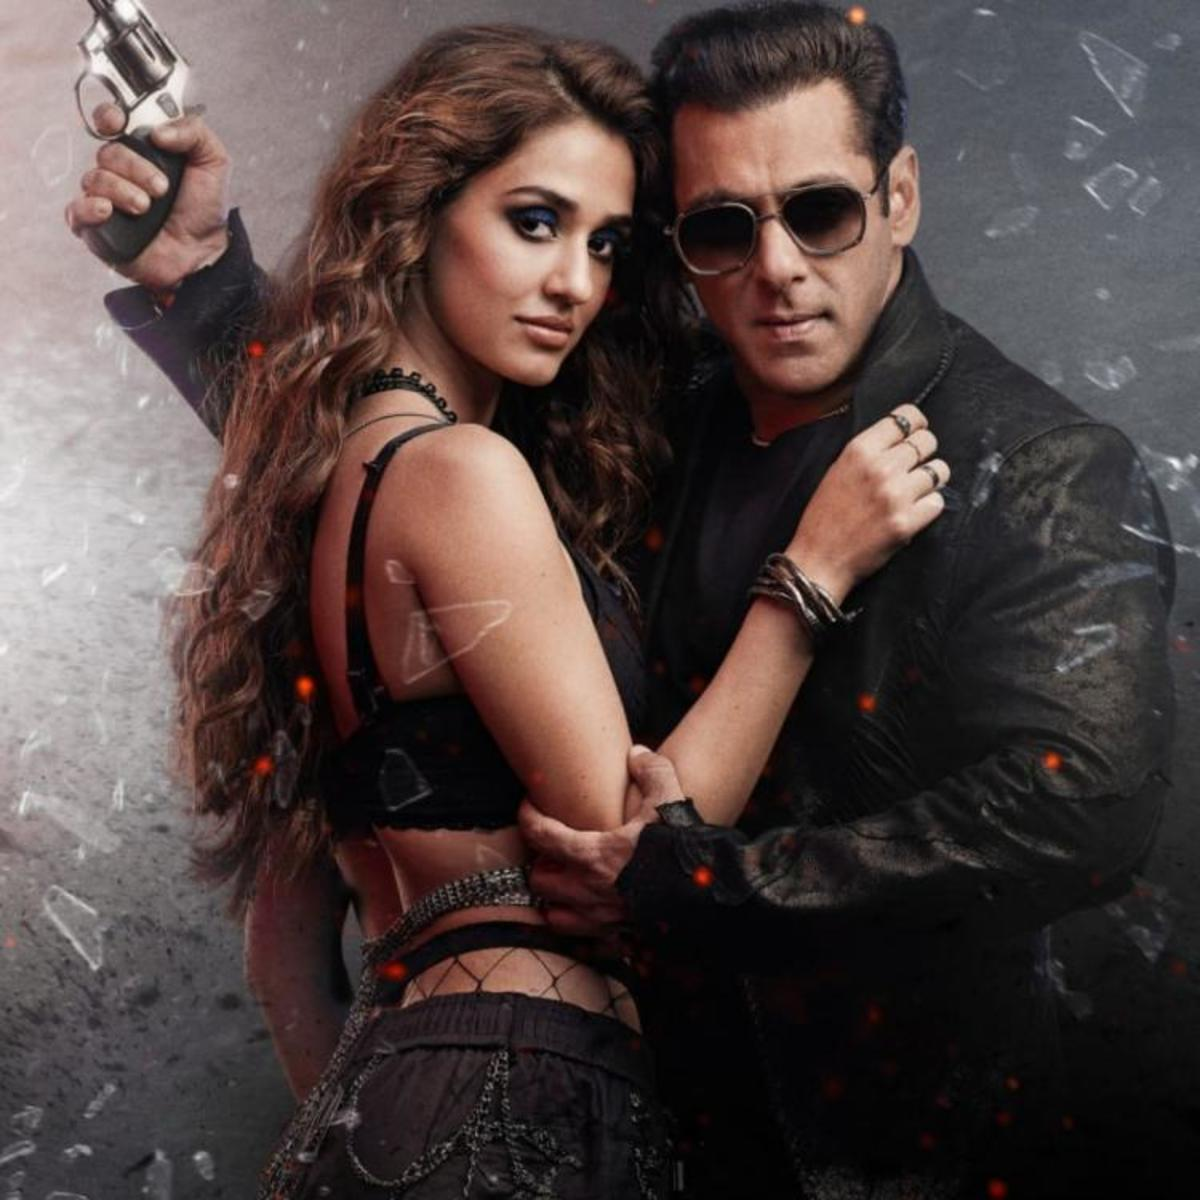 salman-khans-radhe-your-most-wanted-bhai-is-a-complete-entertainment-package